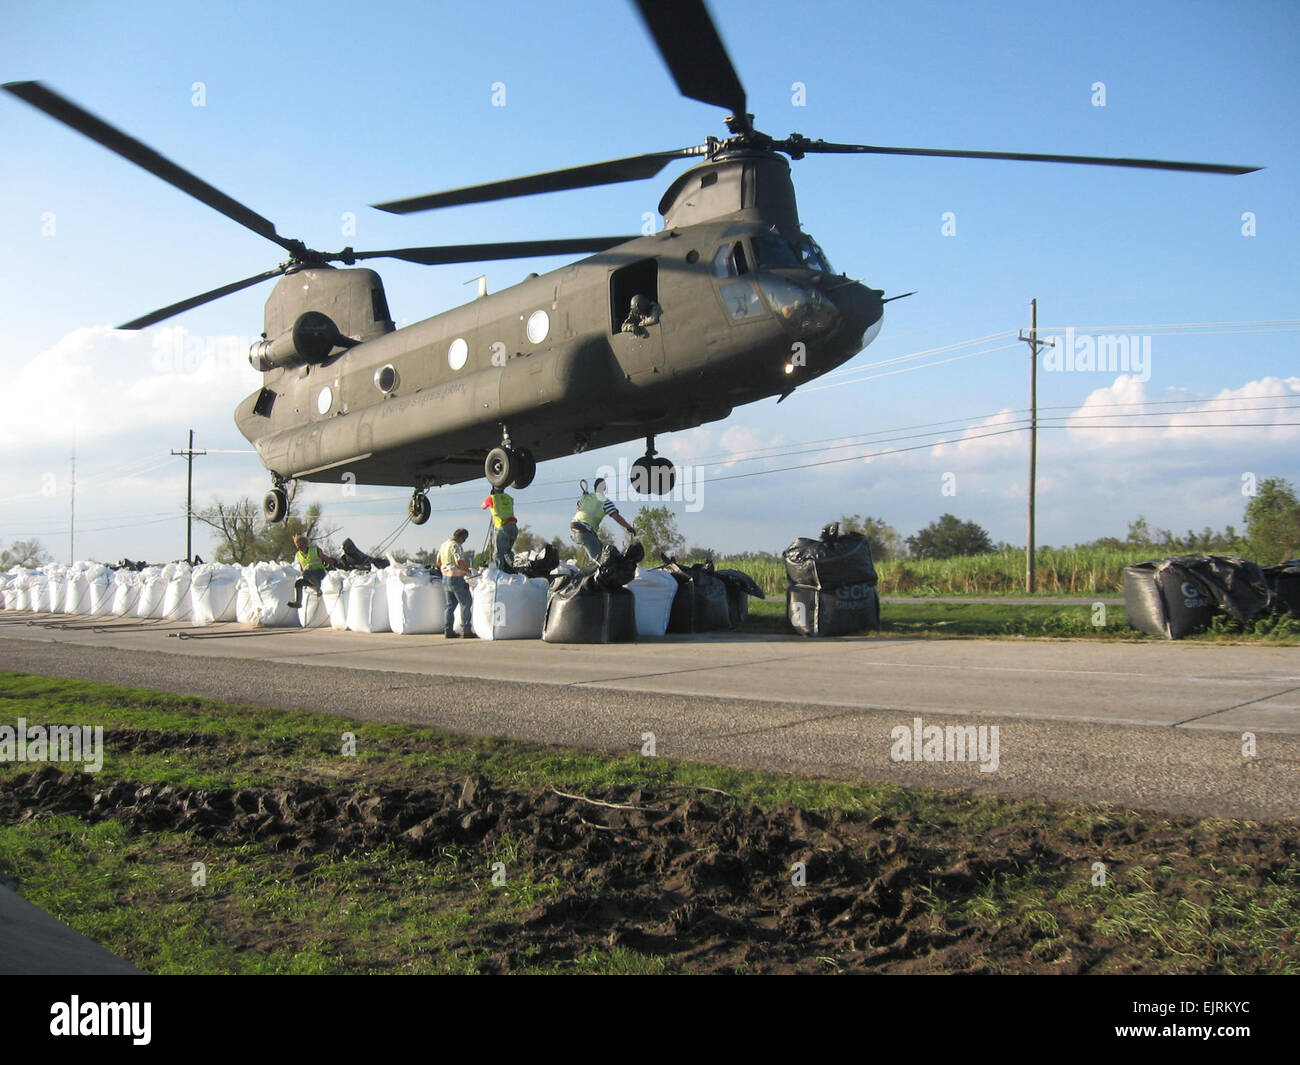 Sandbags weighing 4,000 pounds each are hooked to an Army National Guard CH-47 Chinook helicopter to repair a broken Stock Photo